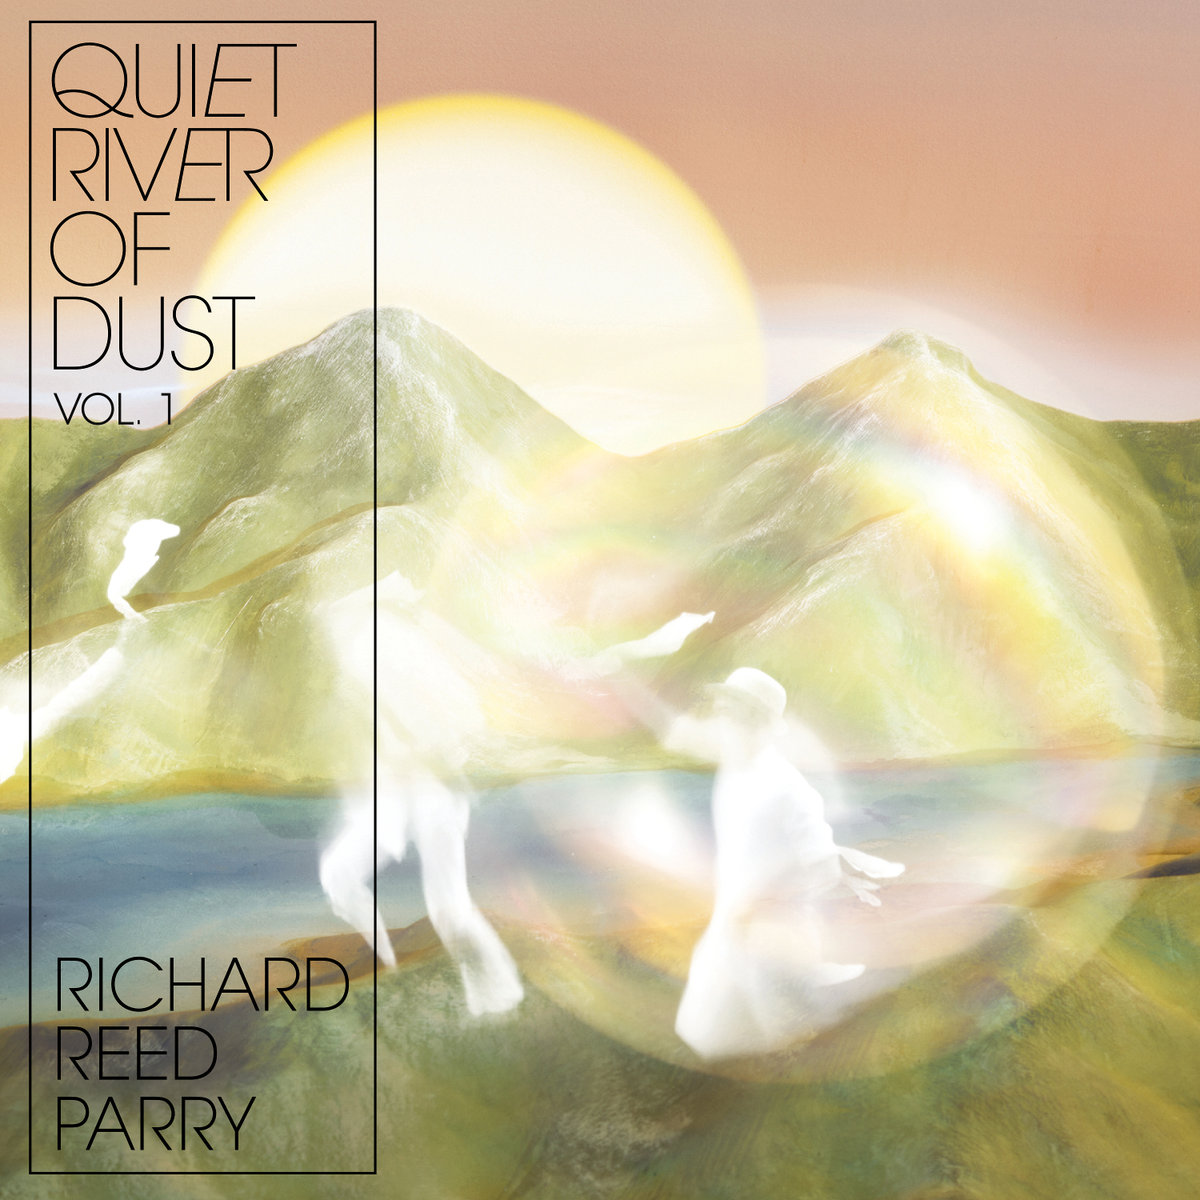 Richard Reed Parry Quiet River of Dust Vol. 1